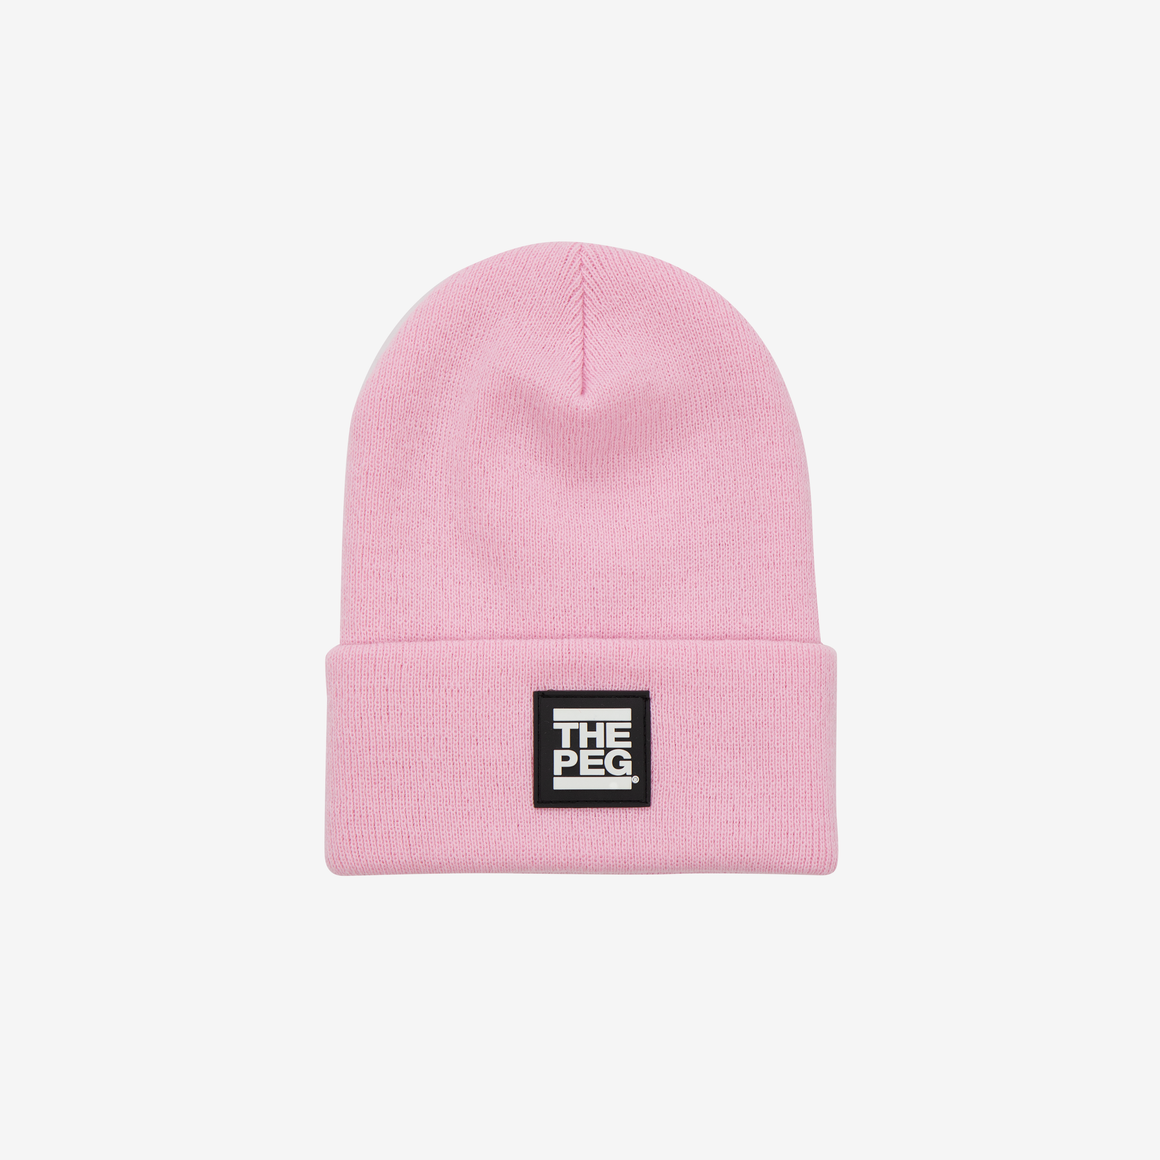 Classic Cuffed Toque (Bubble Gum Pink)